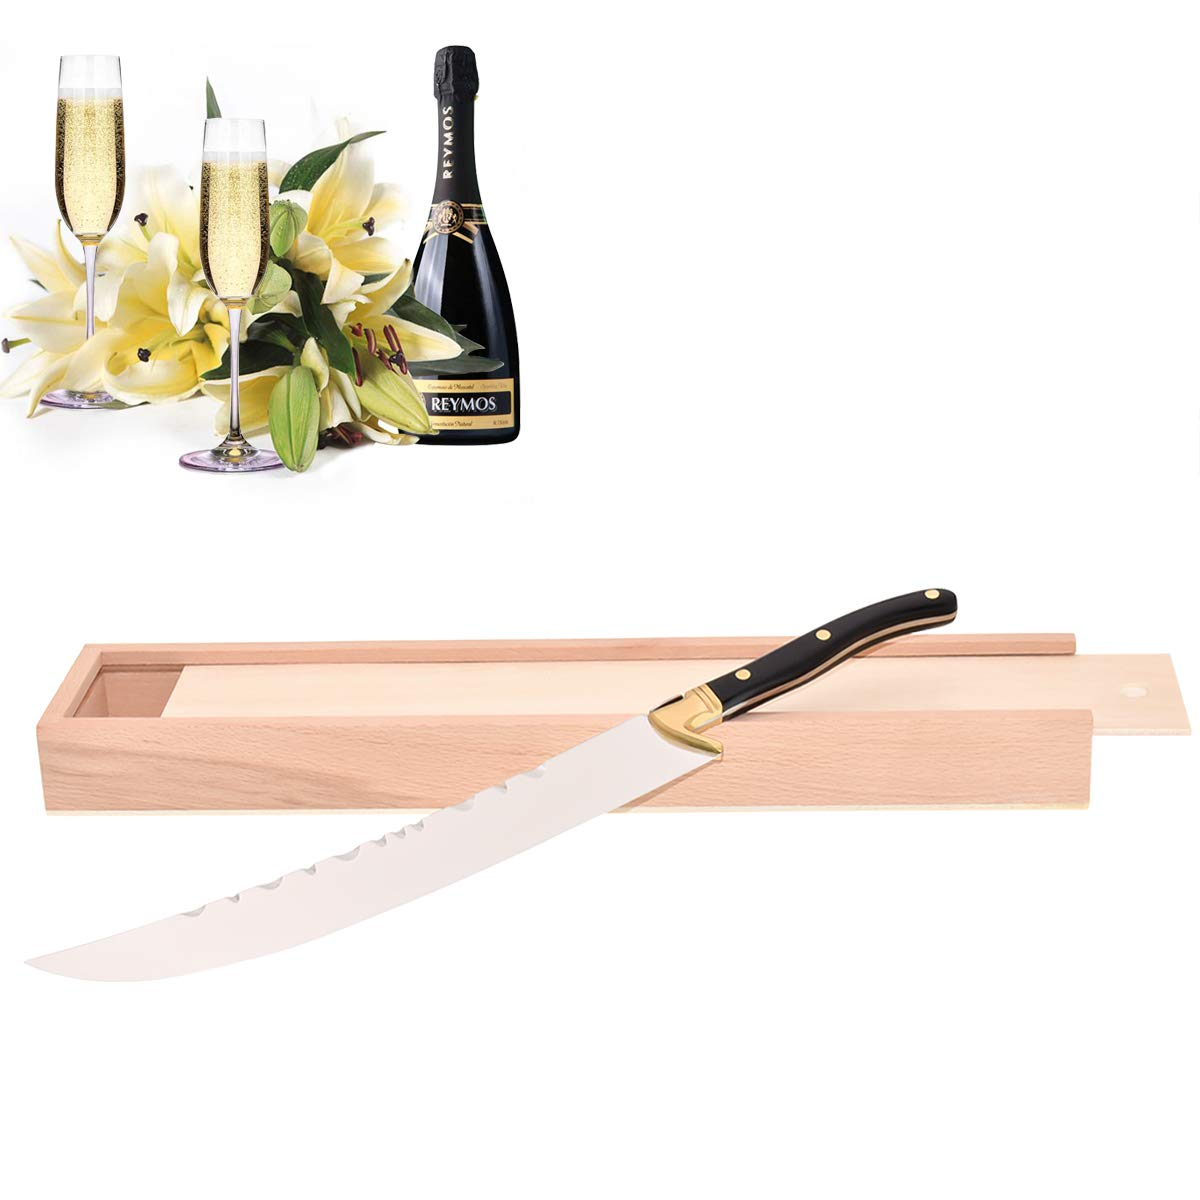 YiFeng Champagne Saber Champagne Sword Wine Knife Bottle Opener Wood Handle with Log Box by YiFeng